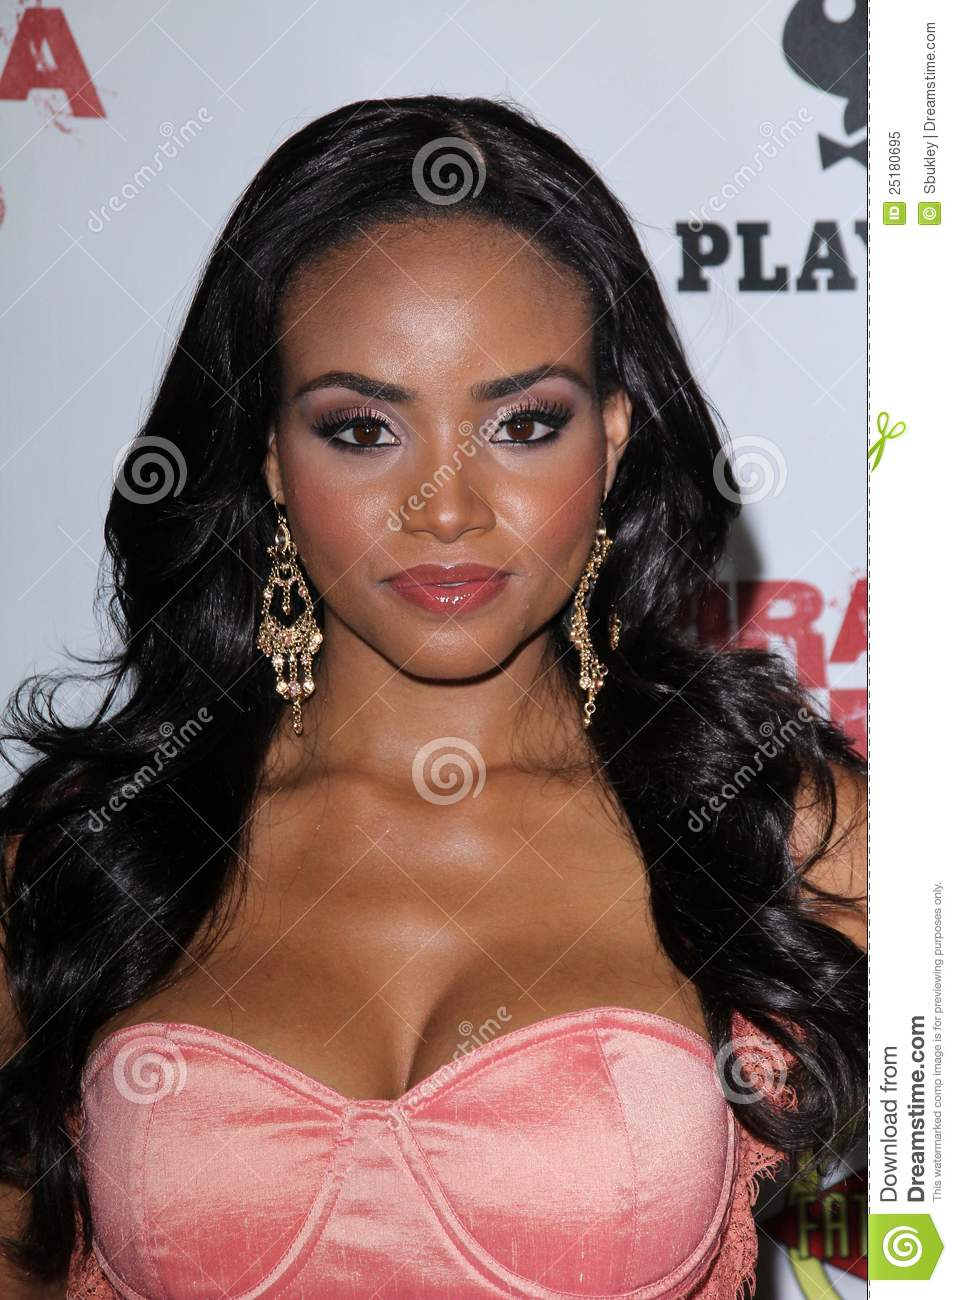 meagan tandy tumblrmeagan tandy twitter, meagan tandy instagram, meagan tandy biathlon, meagan tandy, meagan tandy feet, meagan tandy snapchat, meagan tandy tumblr, meagan tandy imdb, meagan tandy gif hunt, meagan tandy gif, meagan tandy boyfriend, meagan tandy and trey songz, meagan tandy and tyler hoechlin, meagan tandy and tyler posey, meagan tandy parents